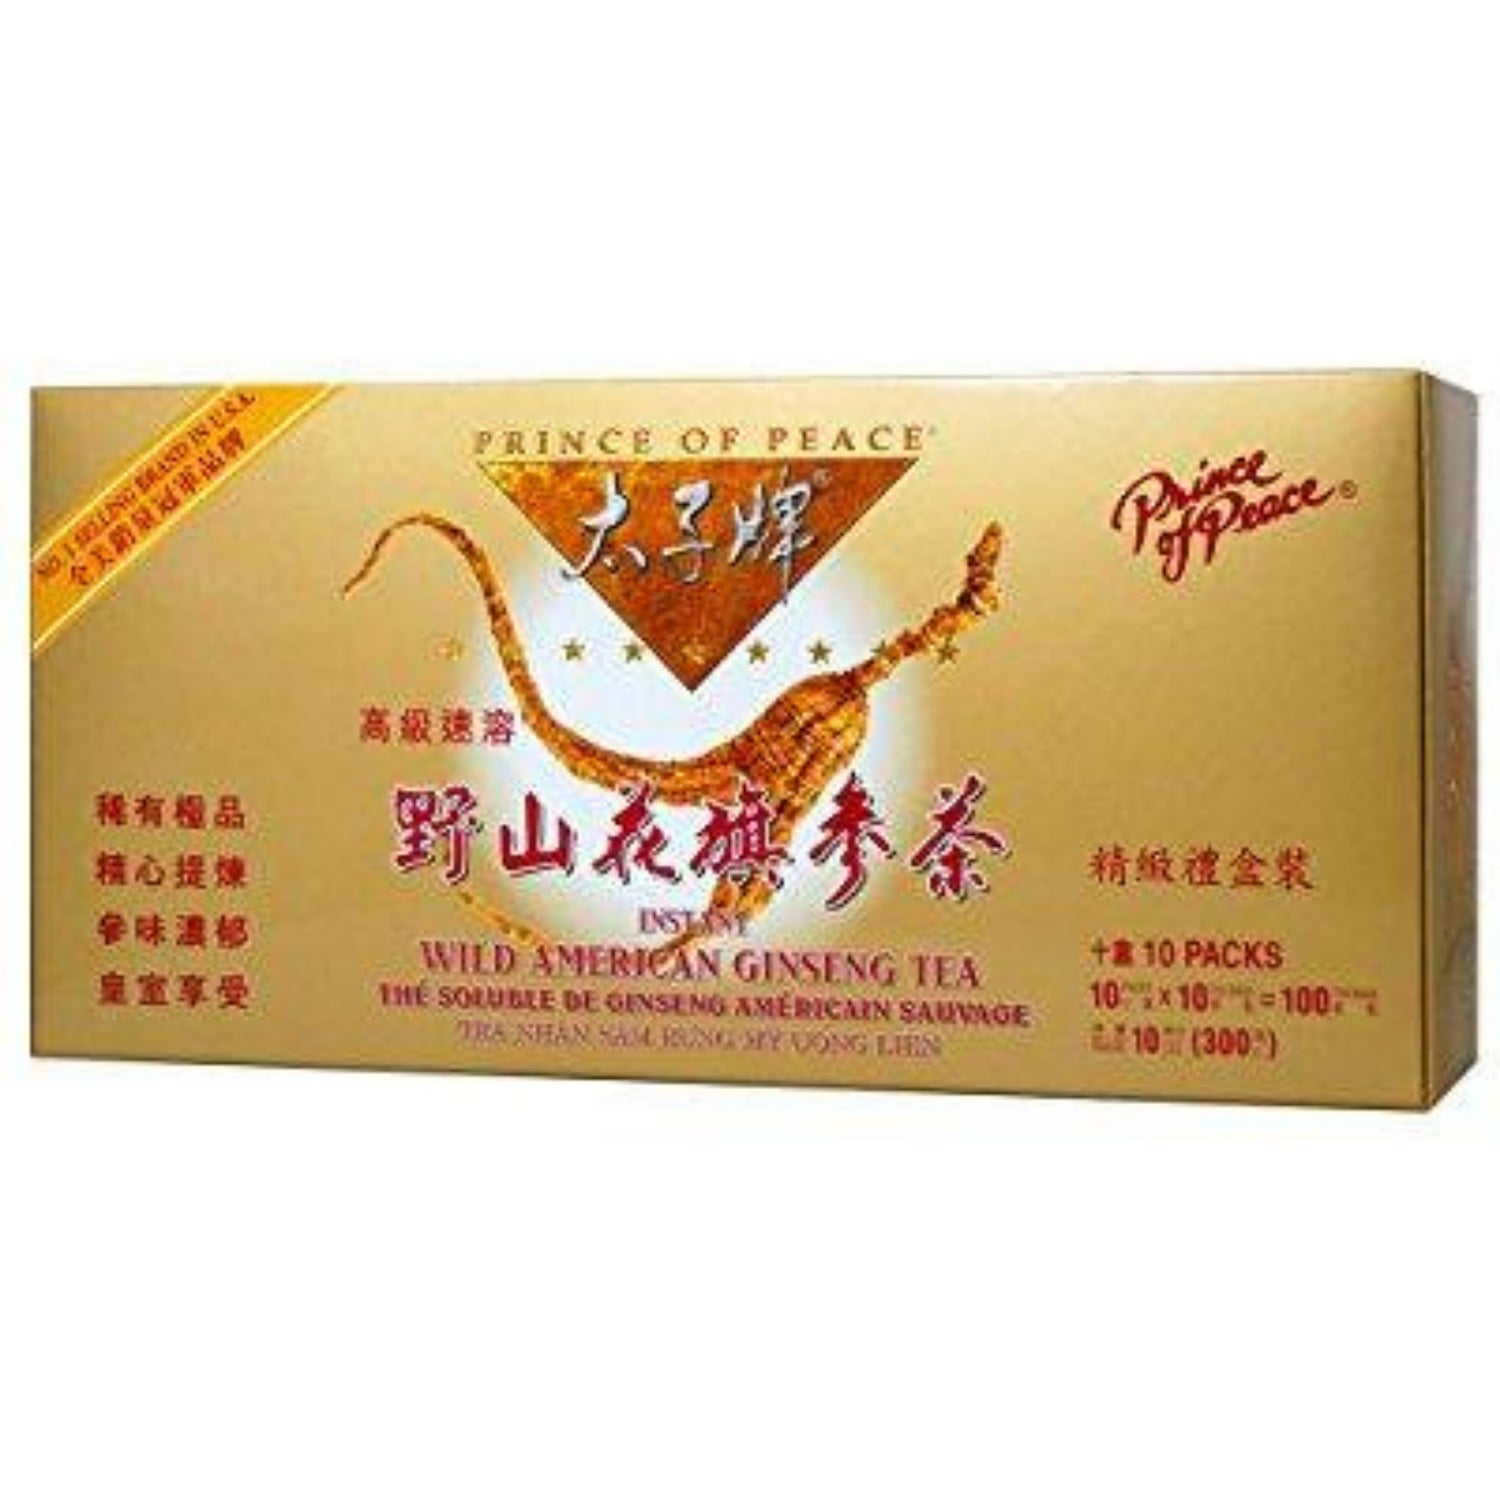 Prince of Peace Wild American Ginseng Tea